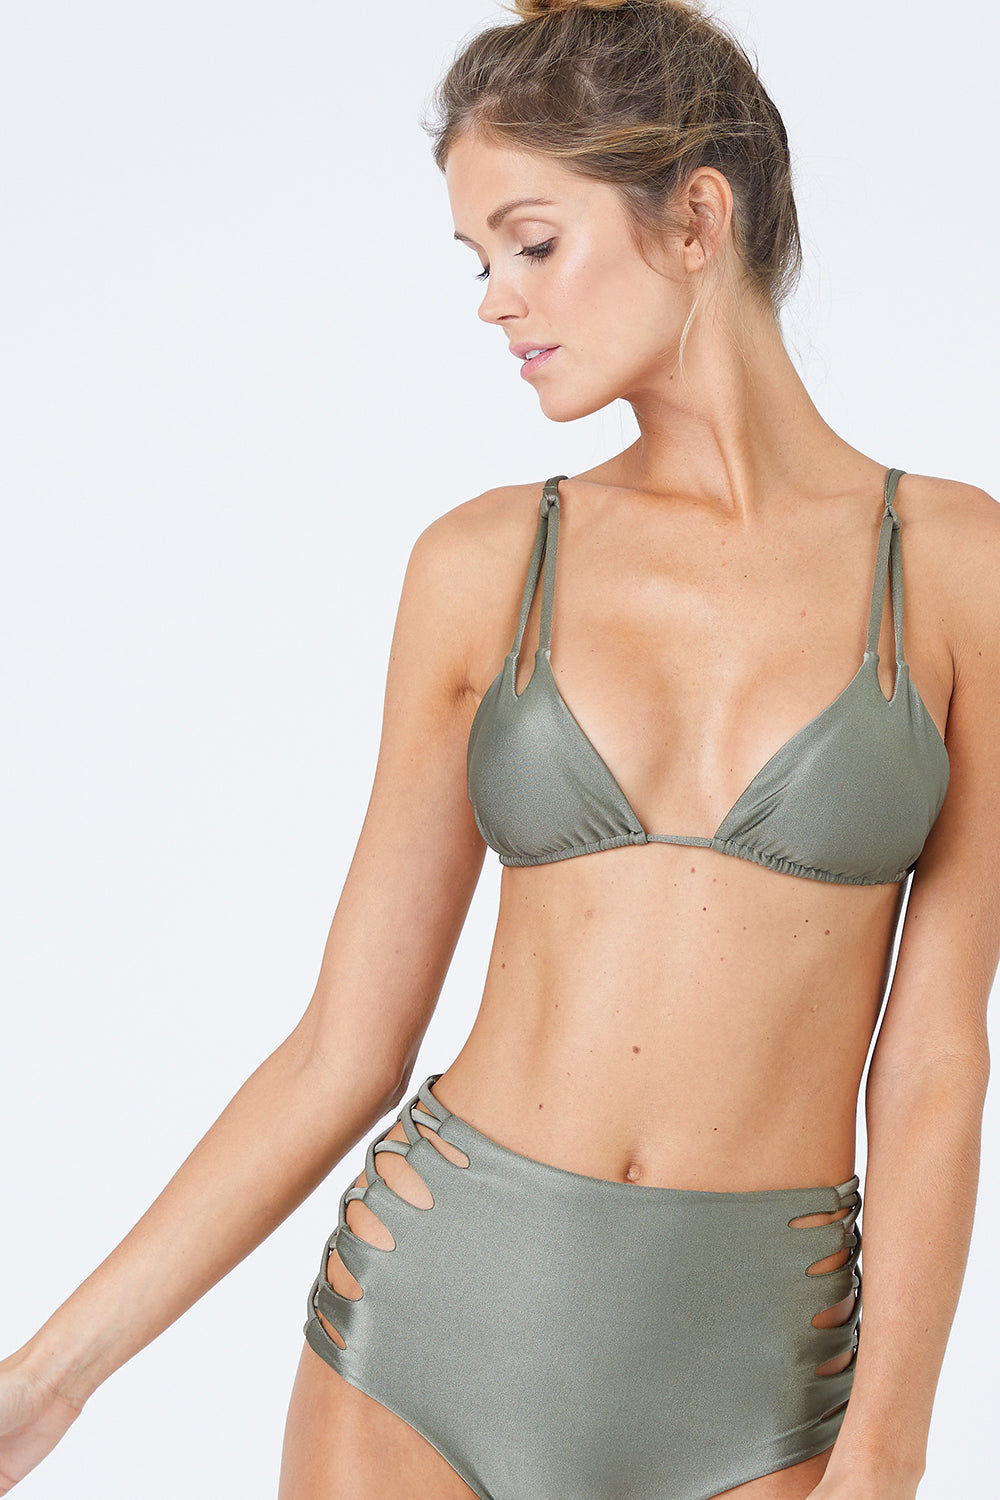 MALAI Lace Up High Waist Bikini Bottom - Sparkly Green Bikini Bottom | Sparkly Green| Malai Malai Lace Up High Waist Bikini Bottom - Sparkly Green Retro style high-waisted bikini bottom in shiny autumn green color. Intricate corset-inspired criss-cross strap detail at sides adds a sexy touch Front View